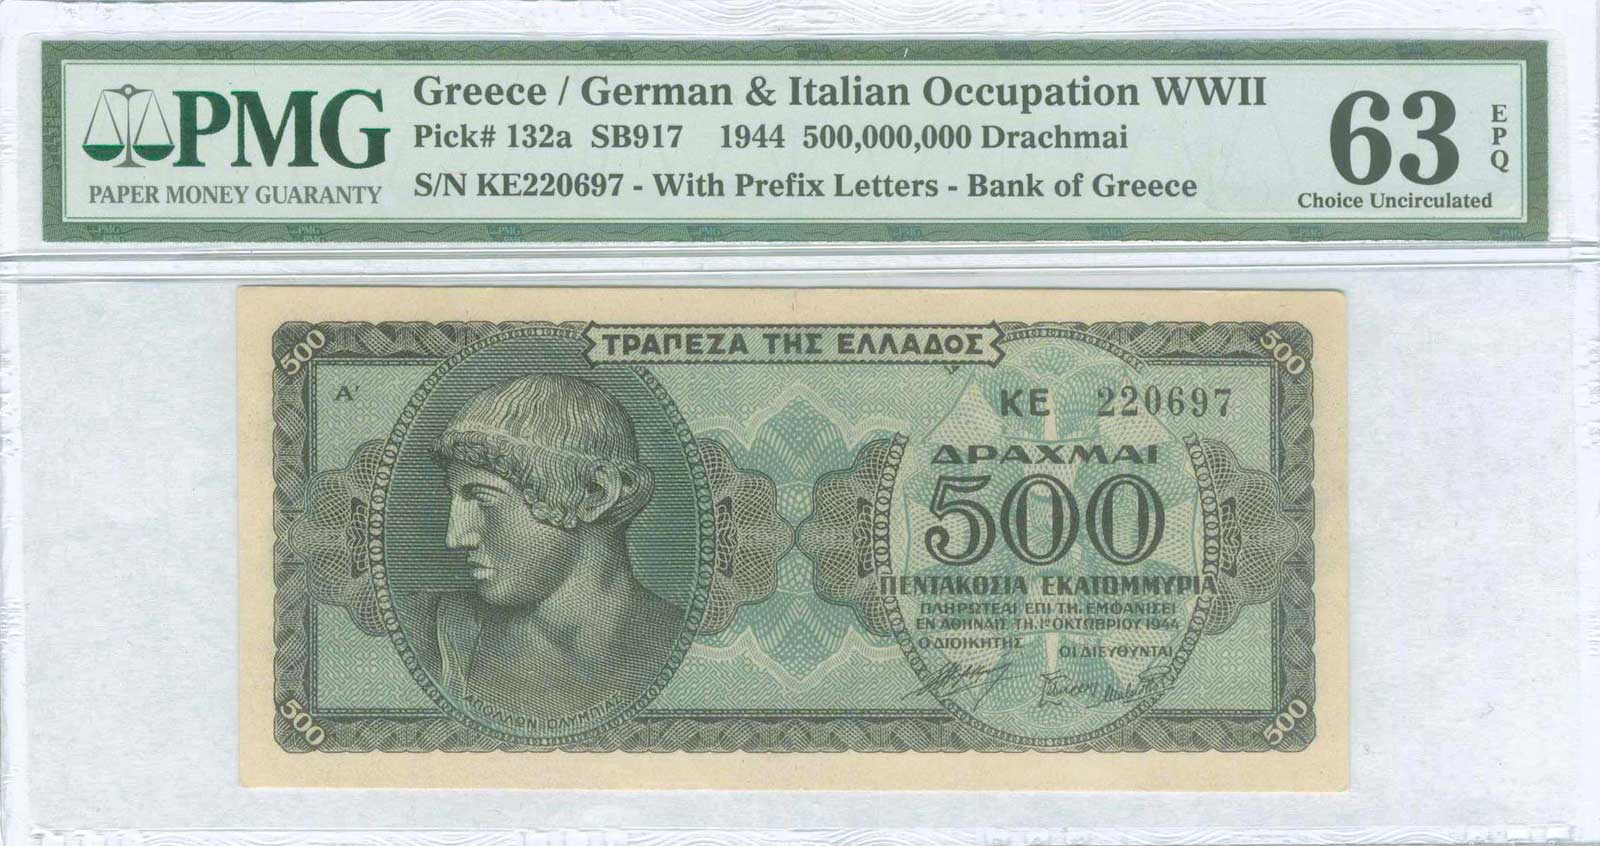 Lot 9333 - GREECE-  PAPER MONEY - BANKNOTES WWII  issued  banknotes -  A. Karamitsos Public & LIVE Bid Auction 610 Coins, Medals & Banknotes